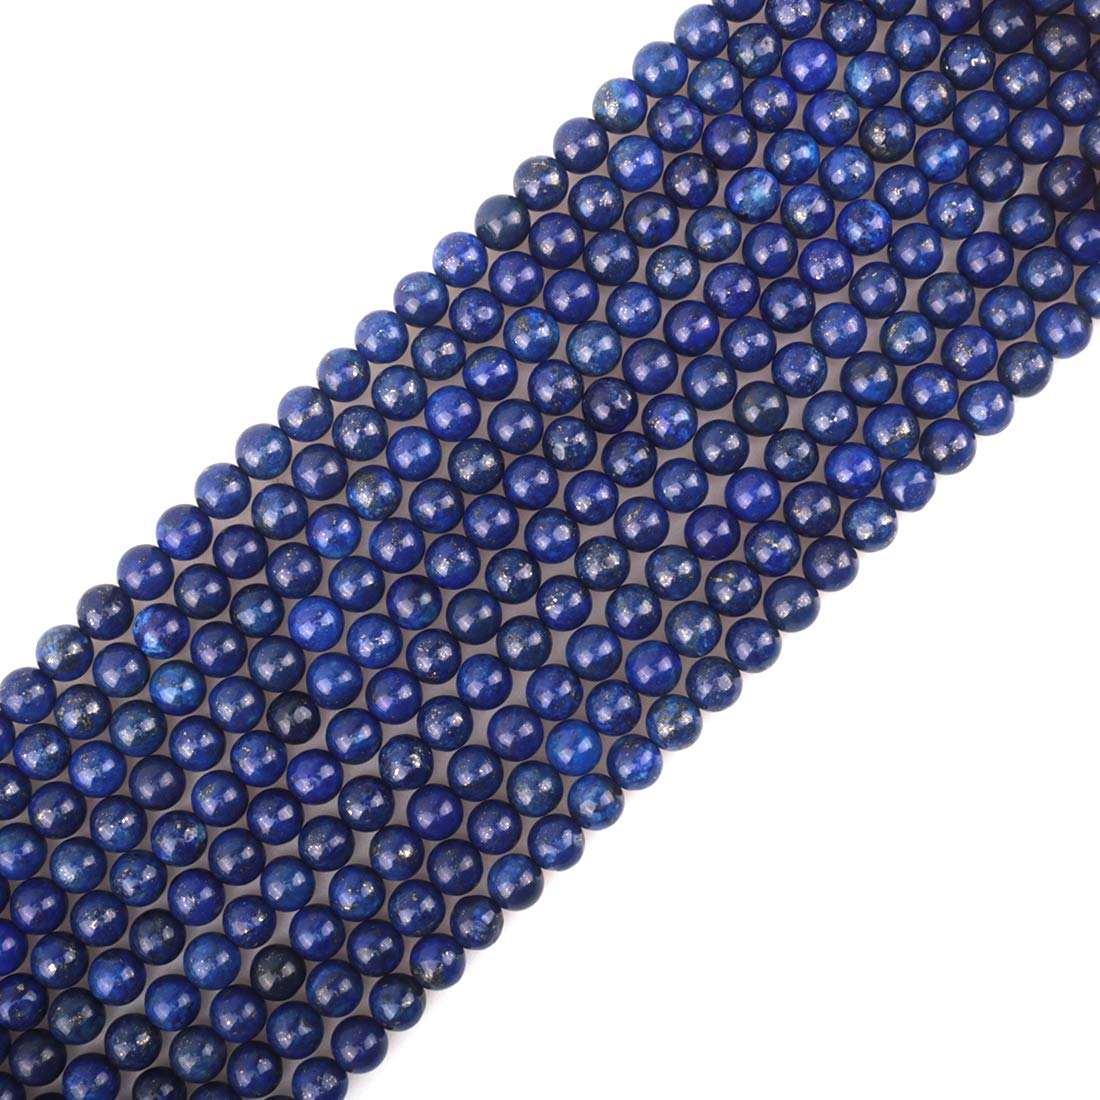 ICAI Beads 8mm Natural Volcanic Gemstone Round Loose Stone Beads for Jewelry Making DIY Crafts Design 1 Strand 15 APPR.43-45pcs